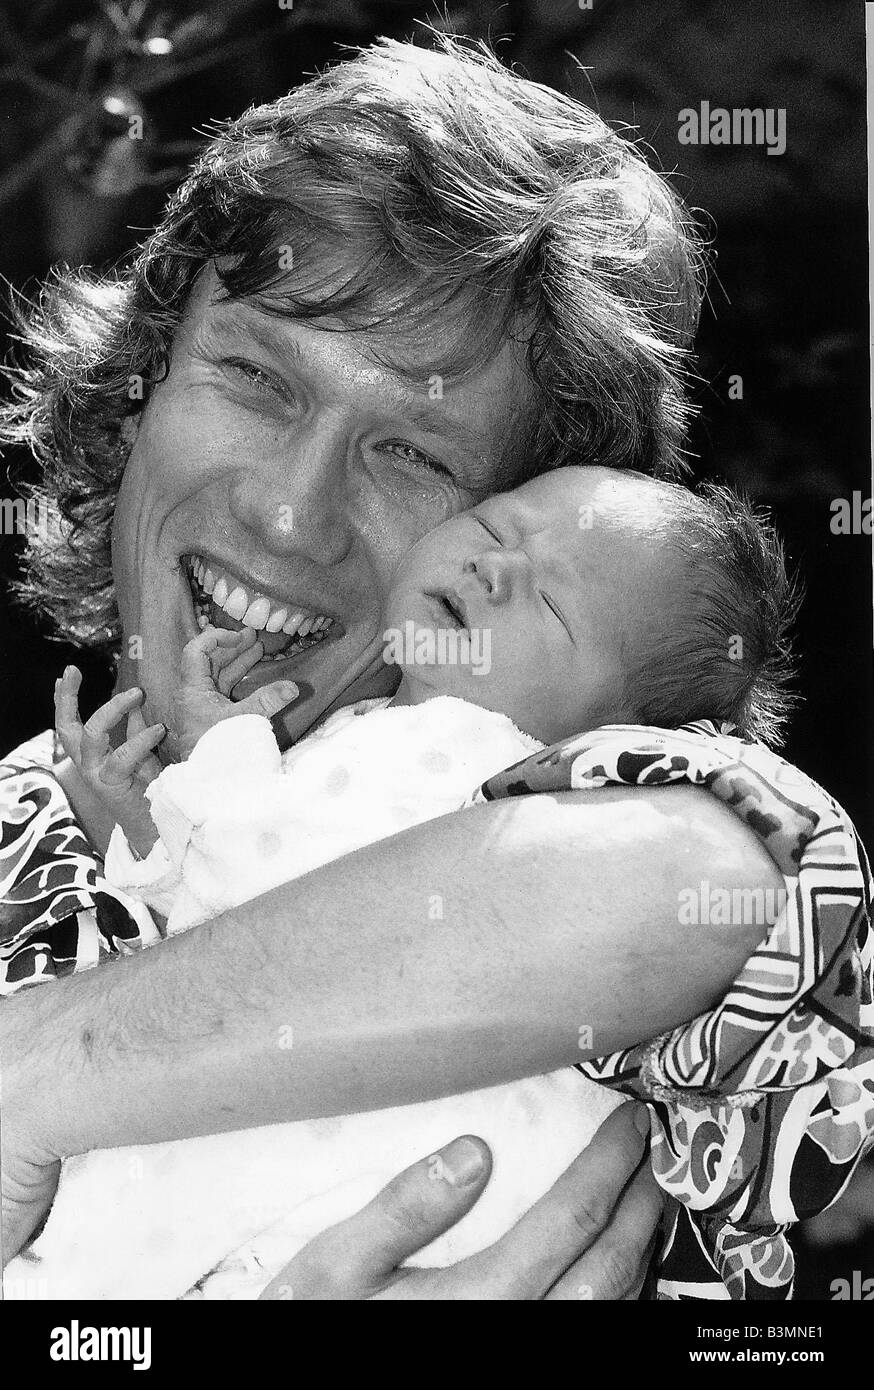 Peter Duncan TV Presenter who was on the Childrens TV Programme Blue Peter holding his new baby son Boris - Stock Image